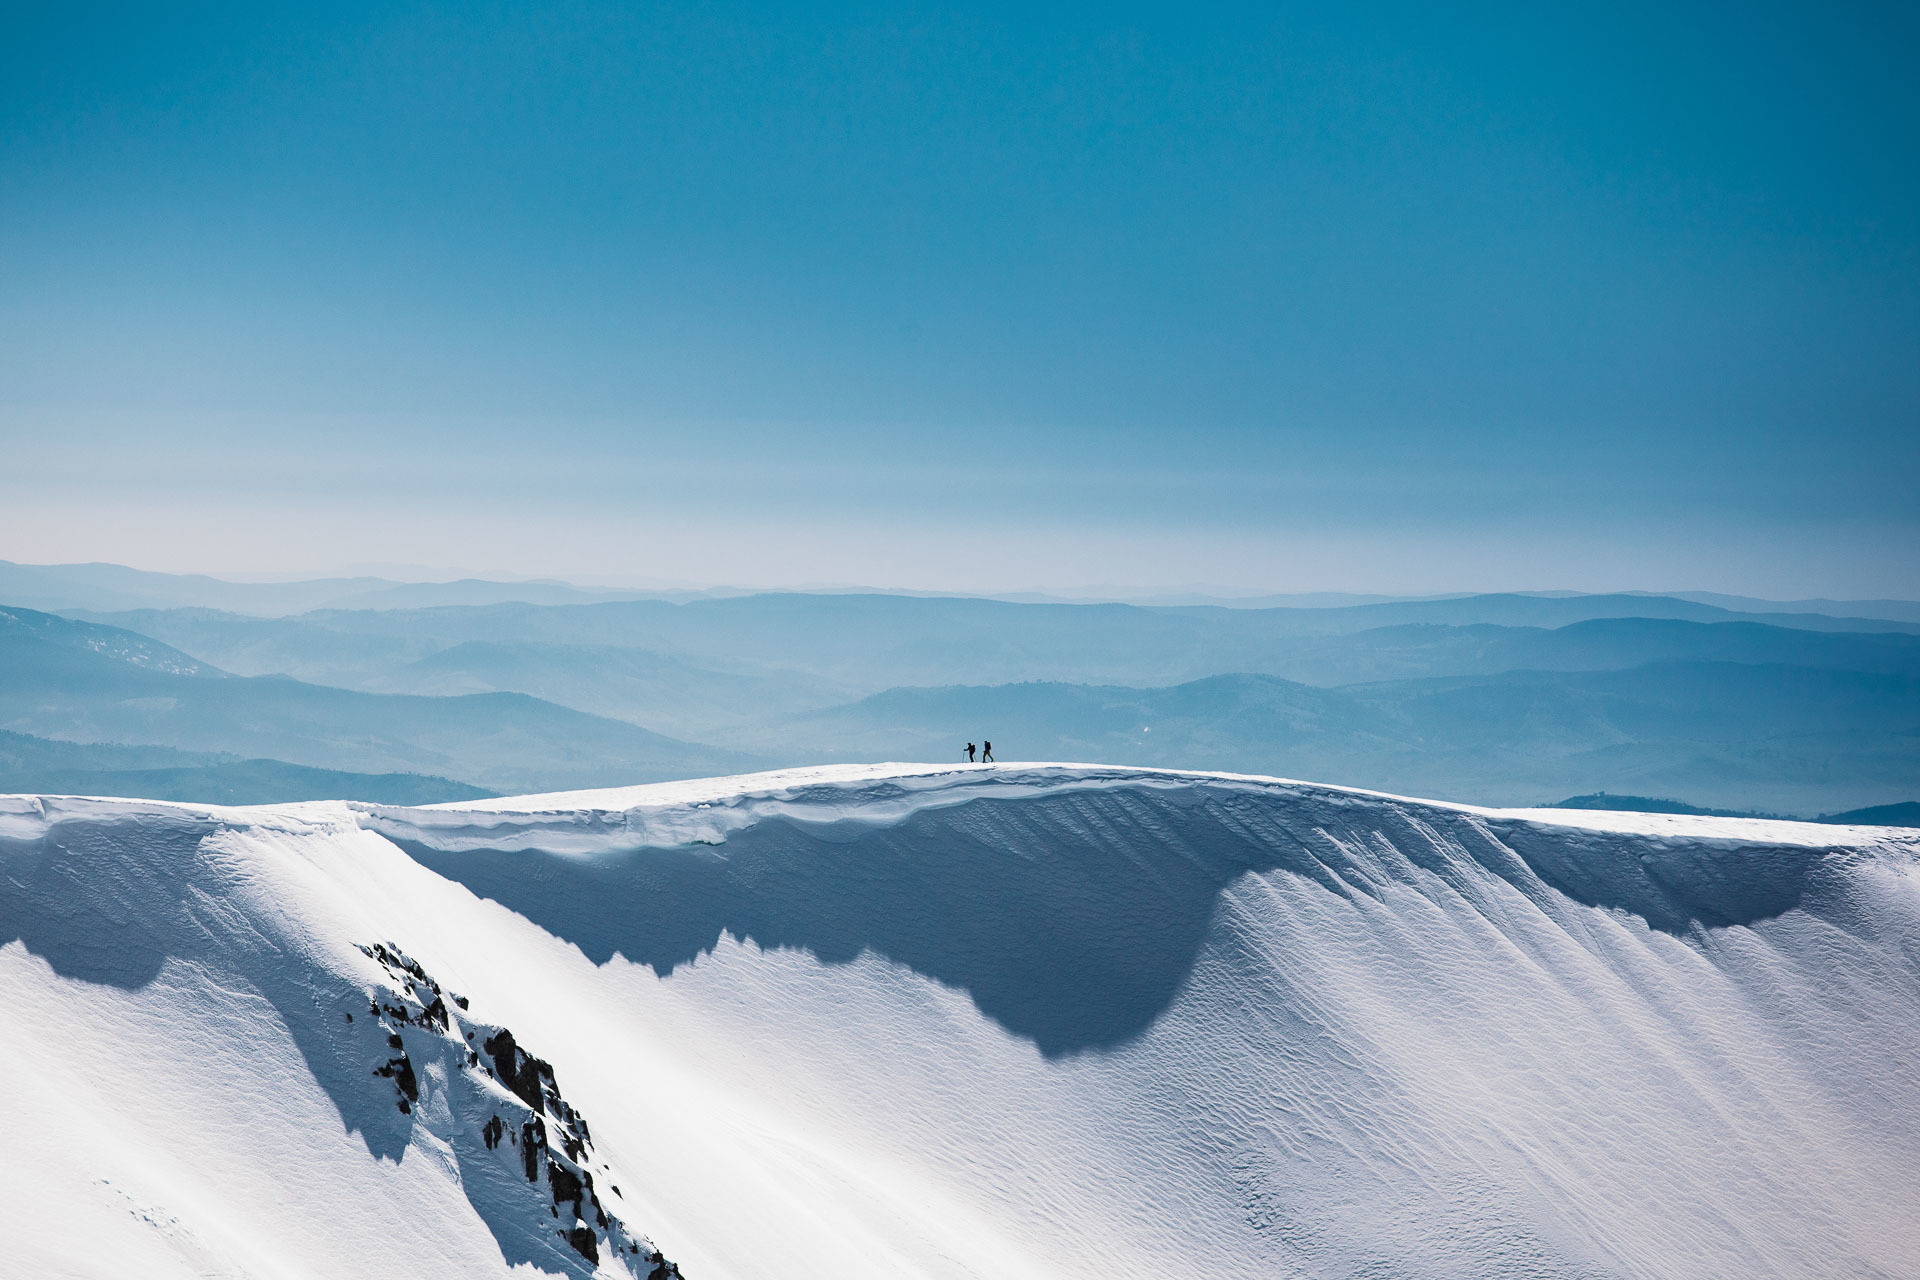 Sea to Summit in Australia – All In A Day's Work, guy williment, backcountry, snow, cornice, nsw